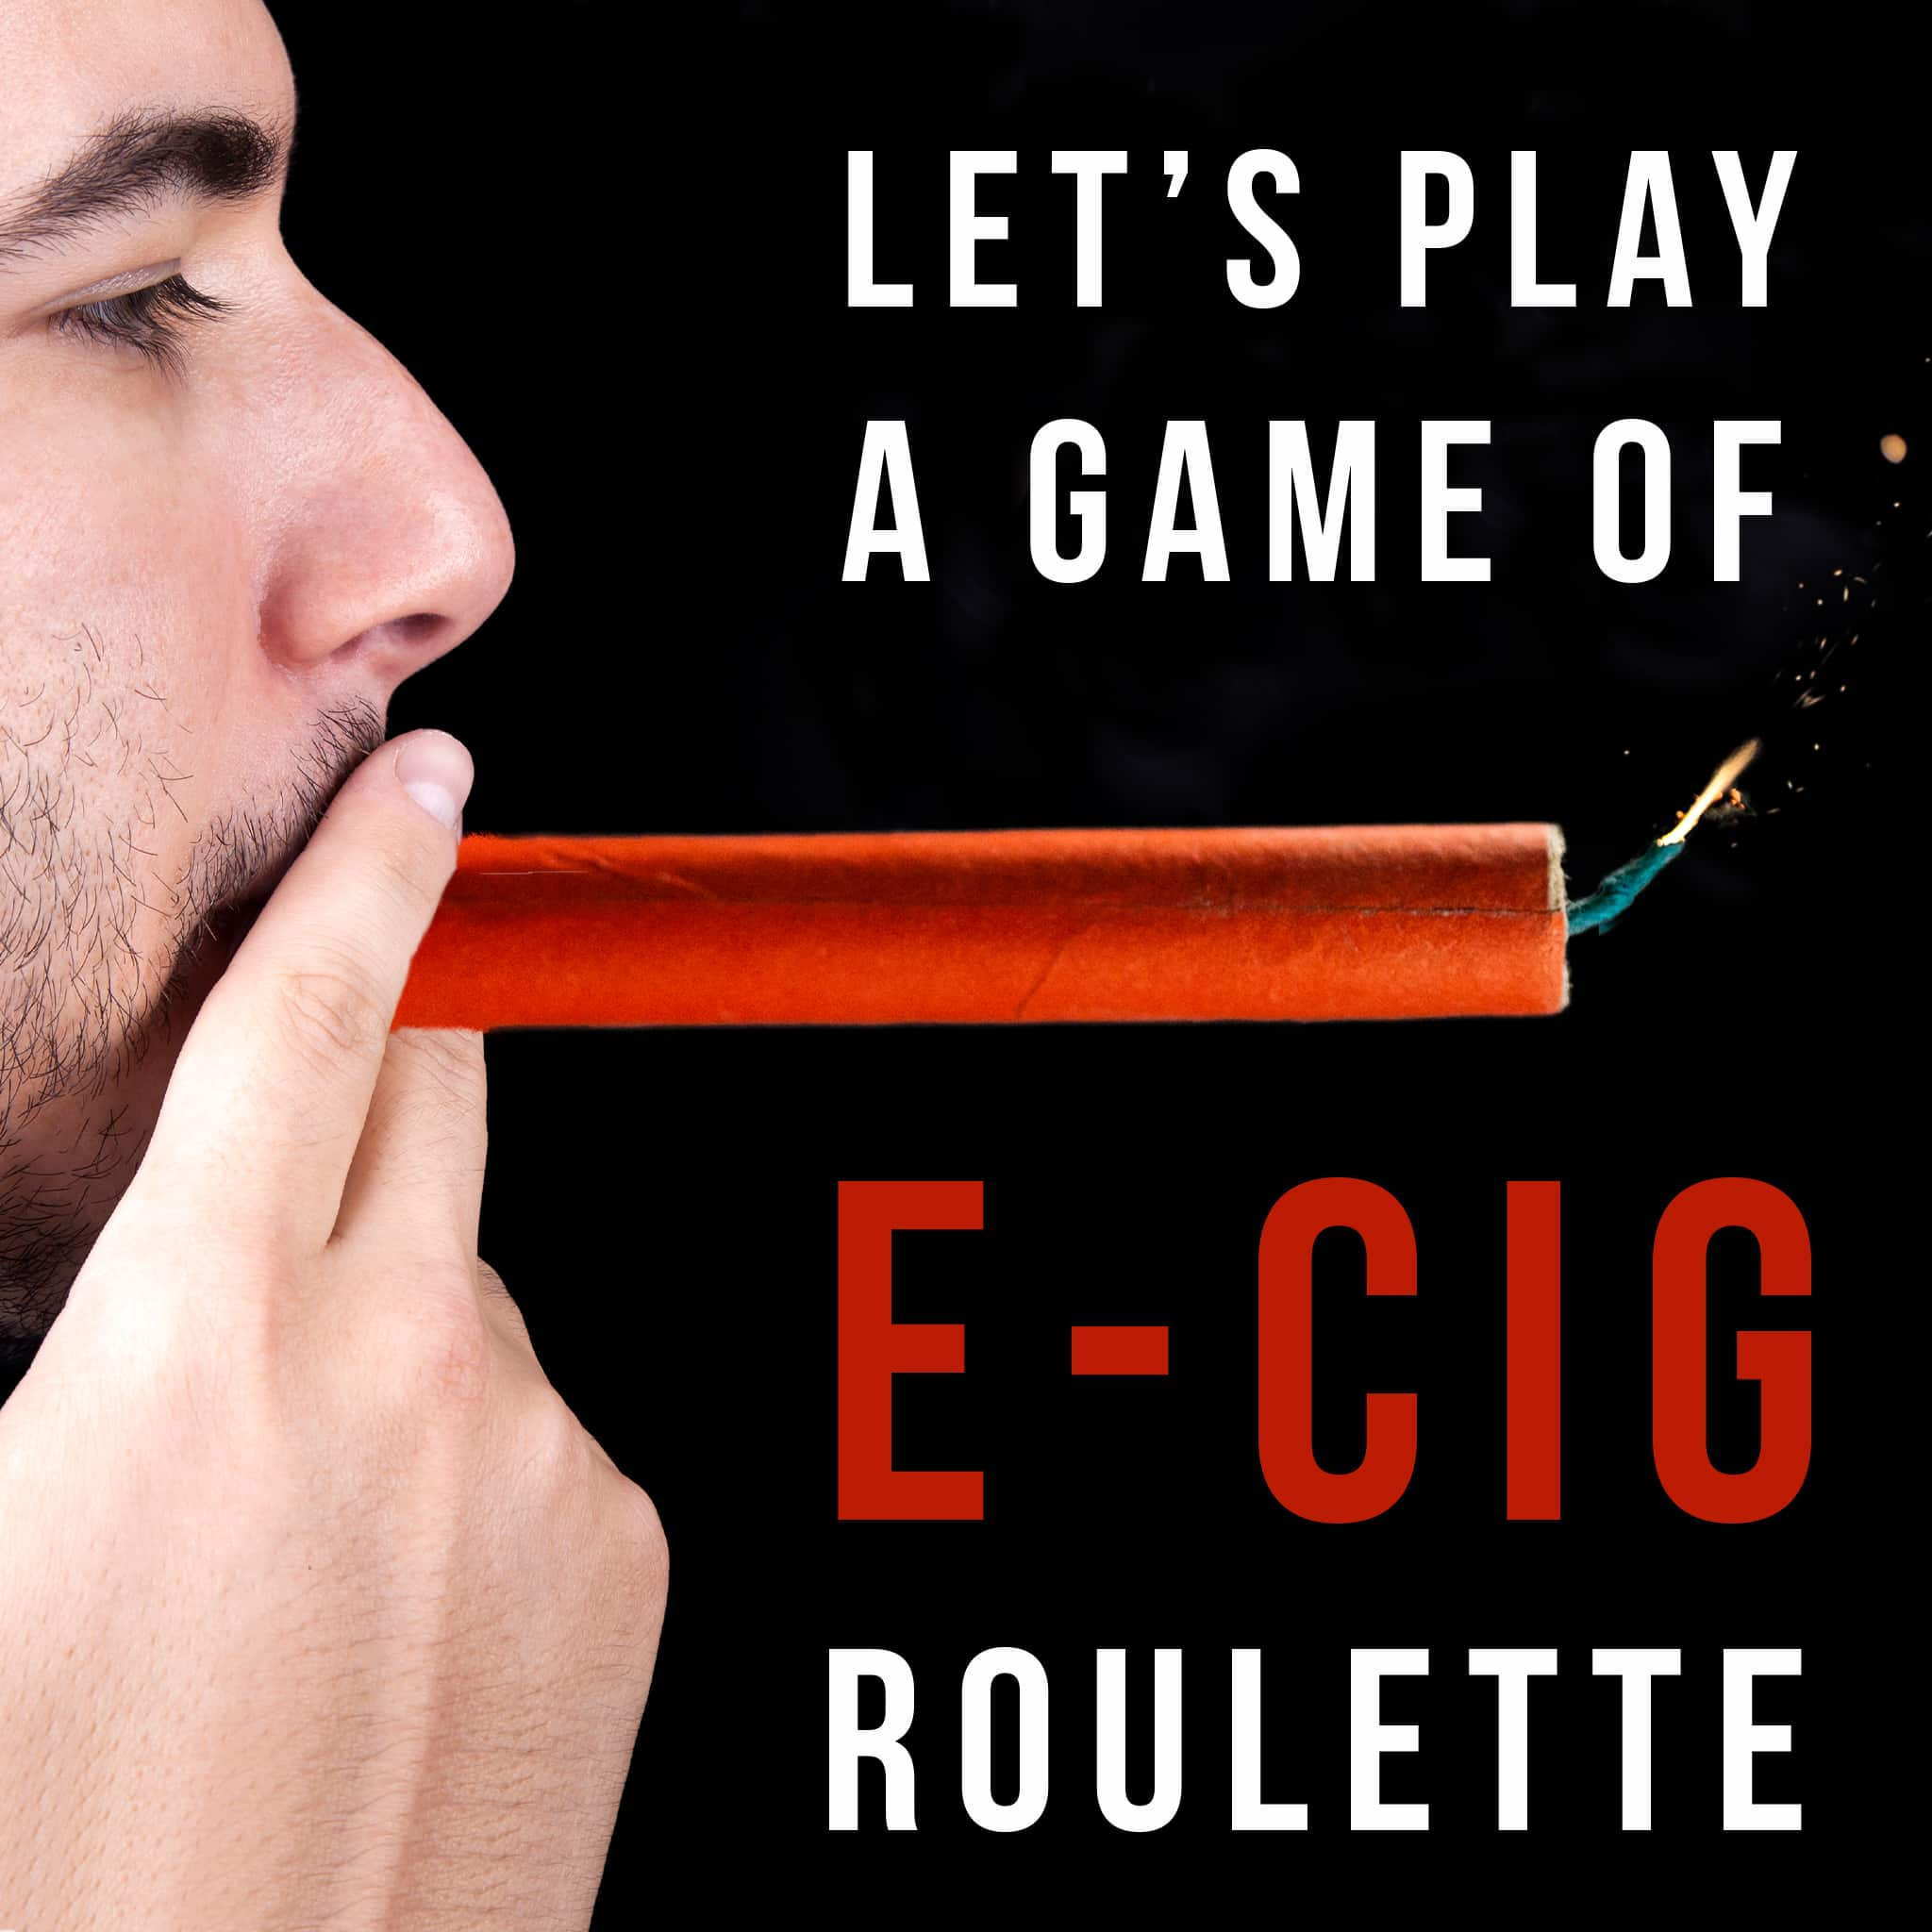 Let's play a game of e-cig roulette. Young man smoking a stick of dynamite.